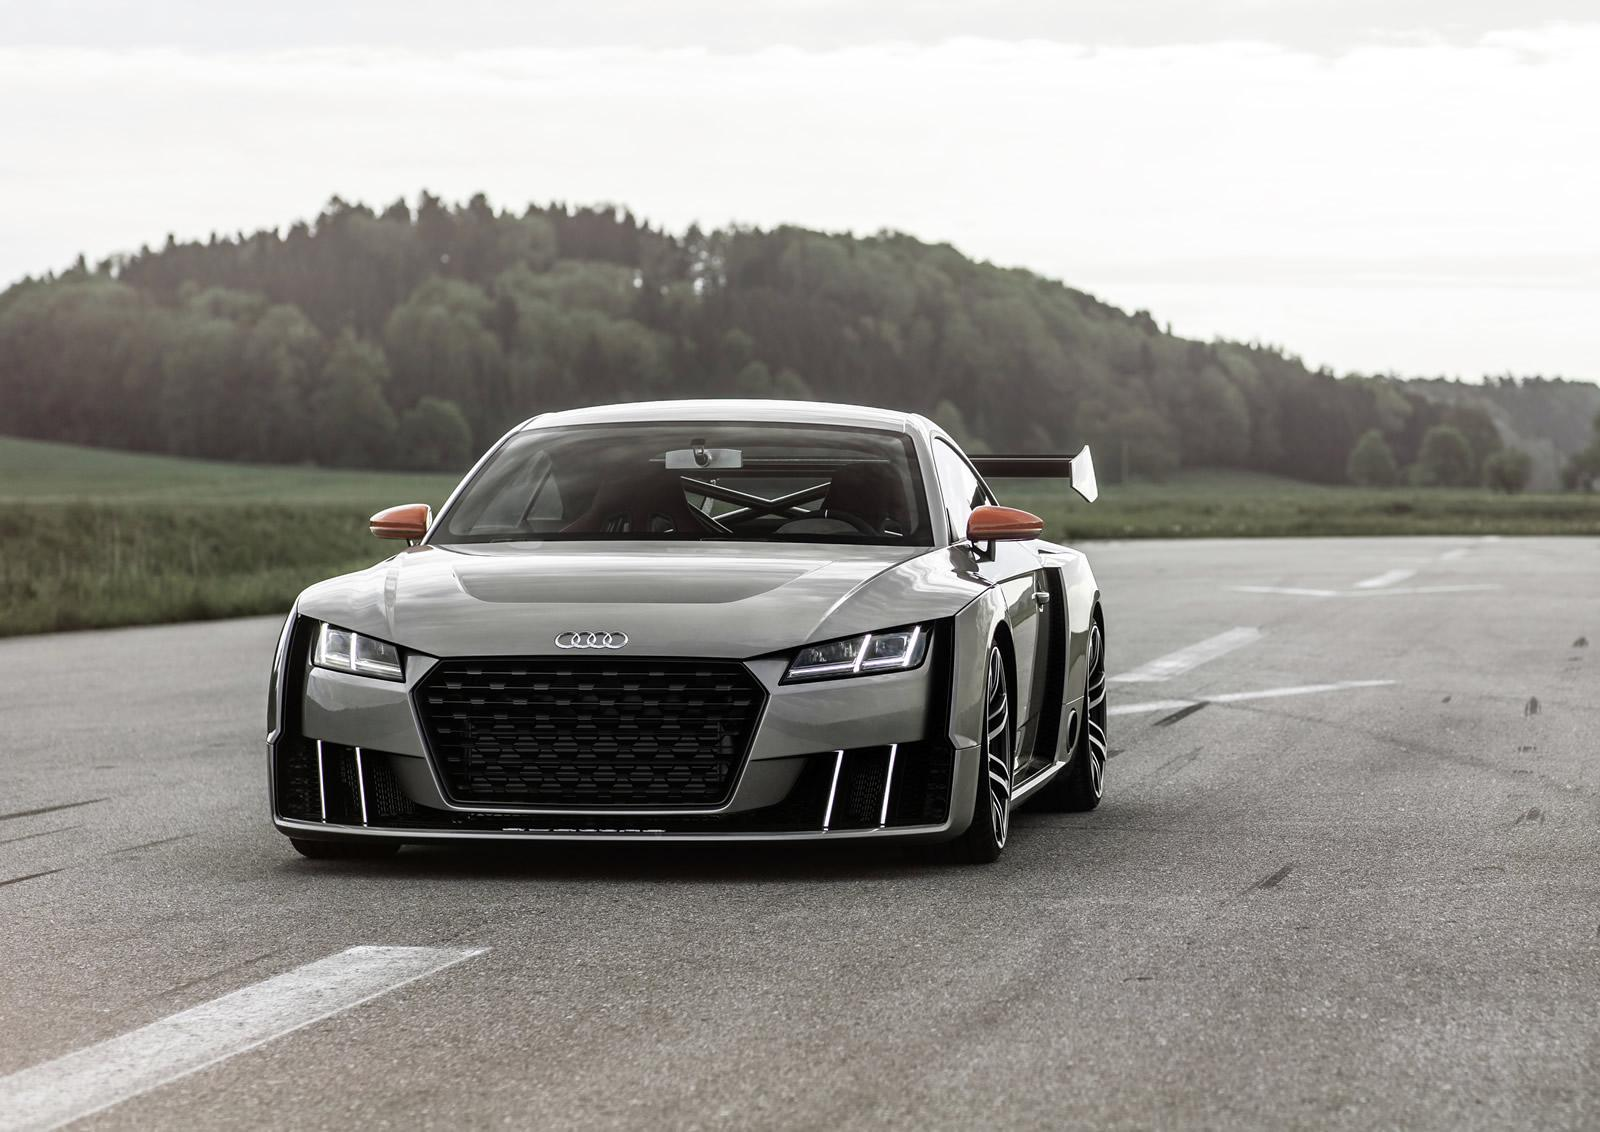 audi tt clubsport 2 5 liter tfsi with electric turbo revealed in first official video. Black Bedroom Furniture Sets. Home Design Ideas